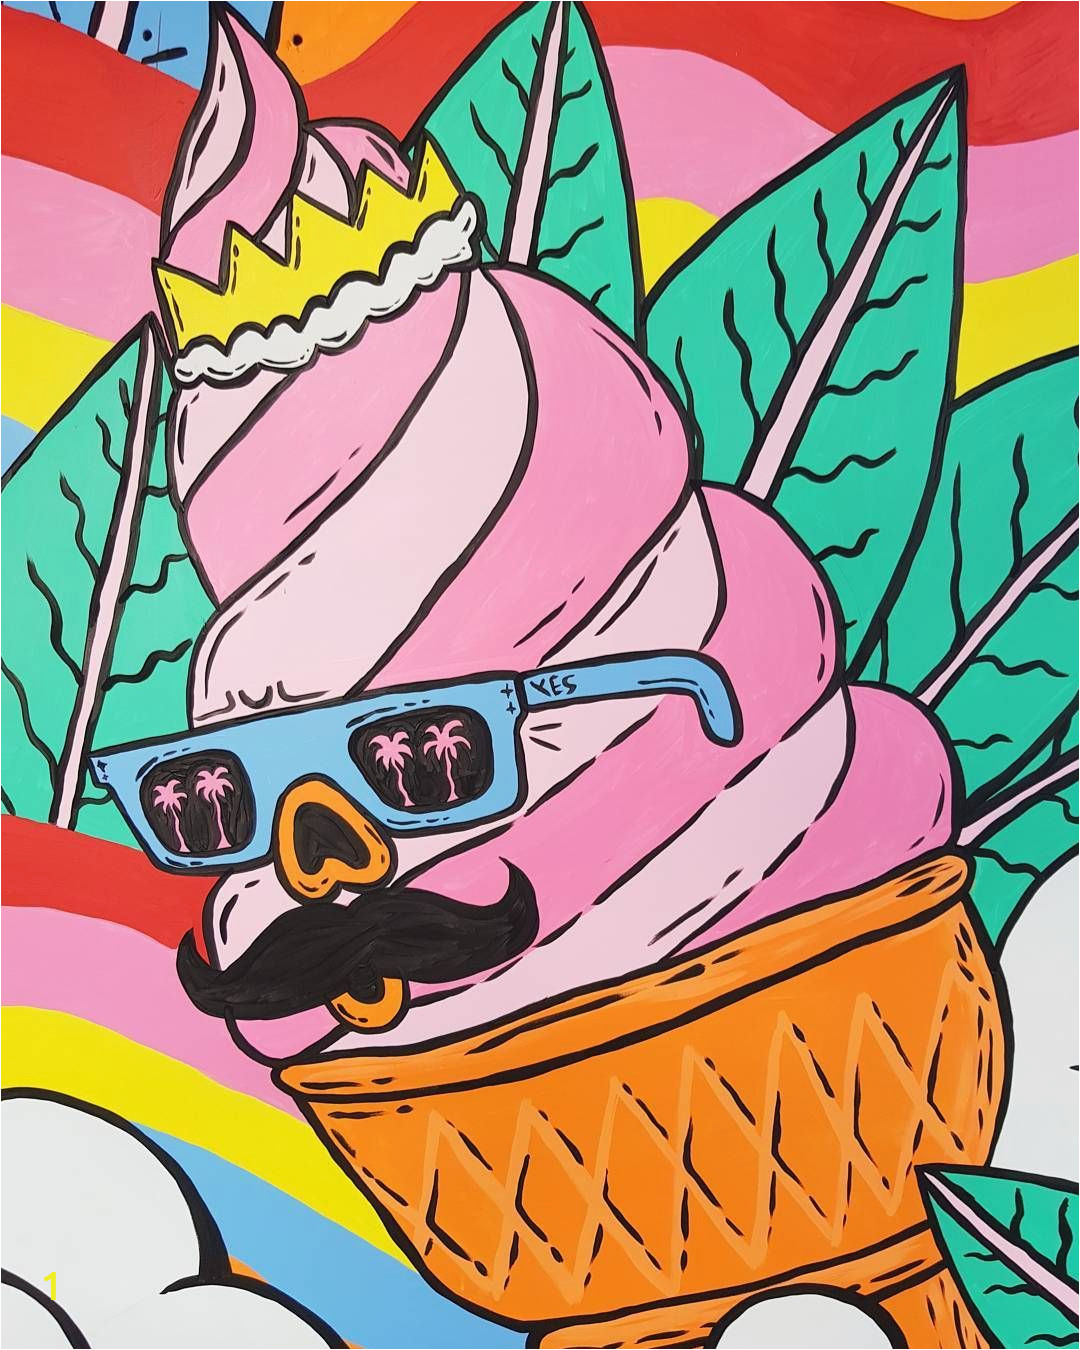 Ice Cream Wall Mural Gelato John From My soon to Be Finished Mural at